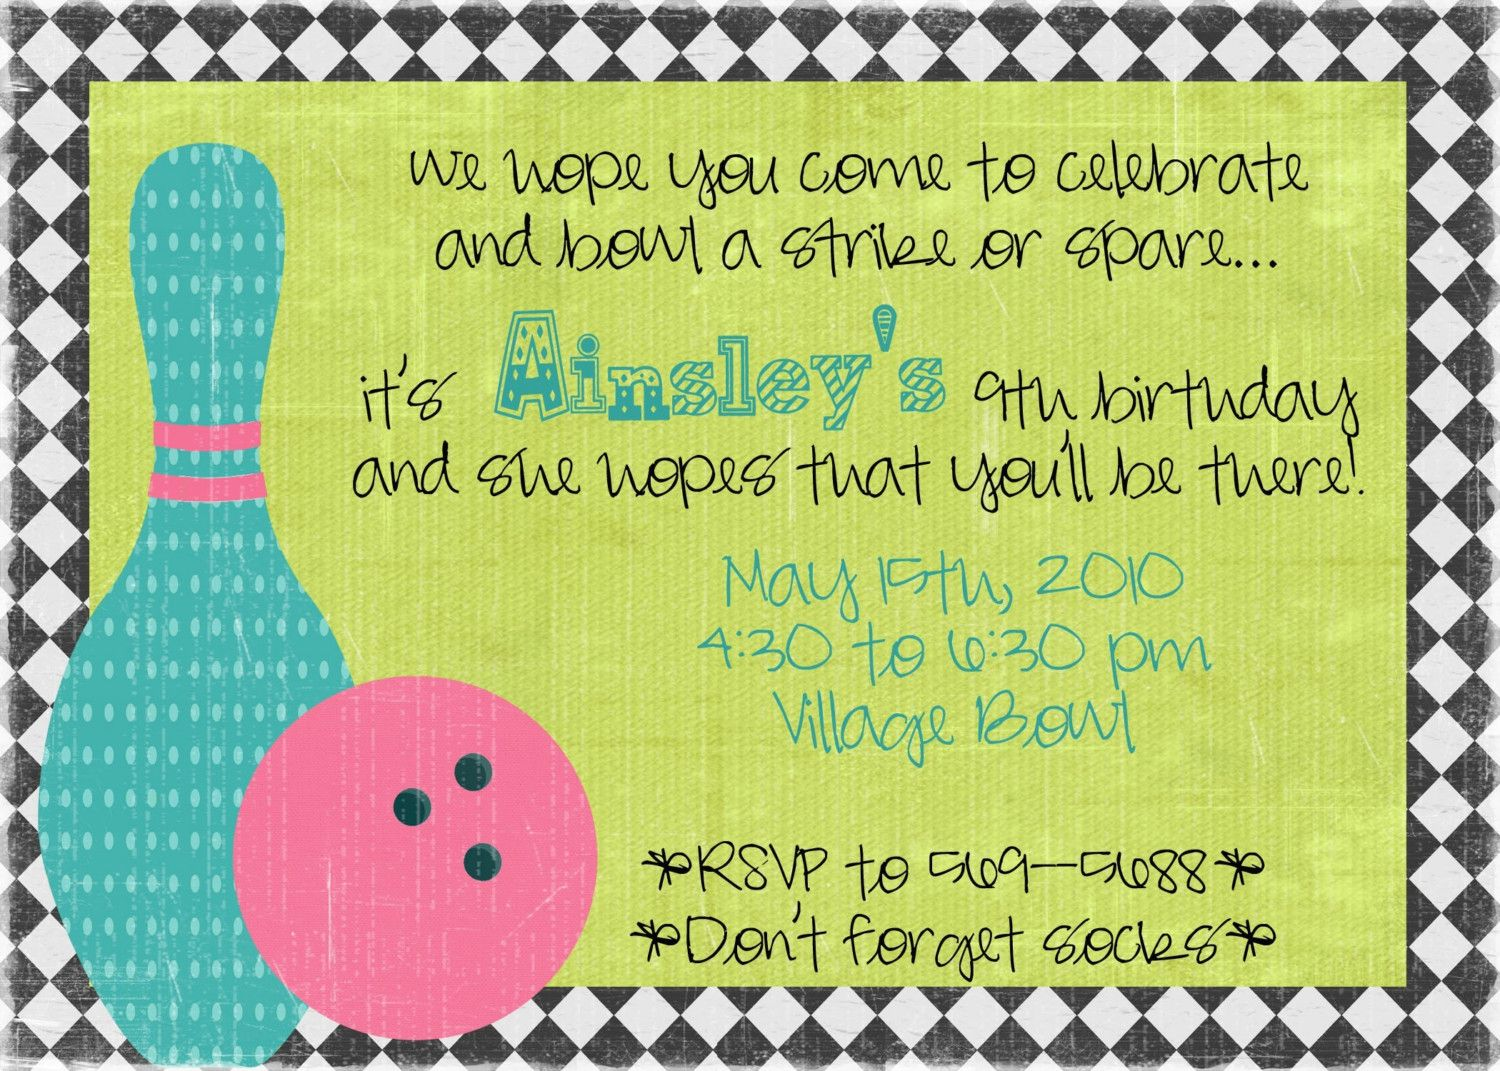 Cool bowling design invite for a kids birthday party | Kiddies ...